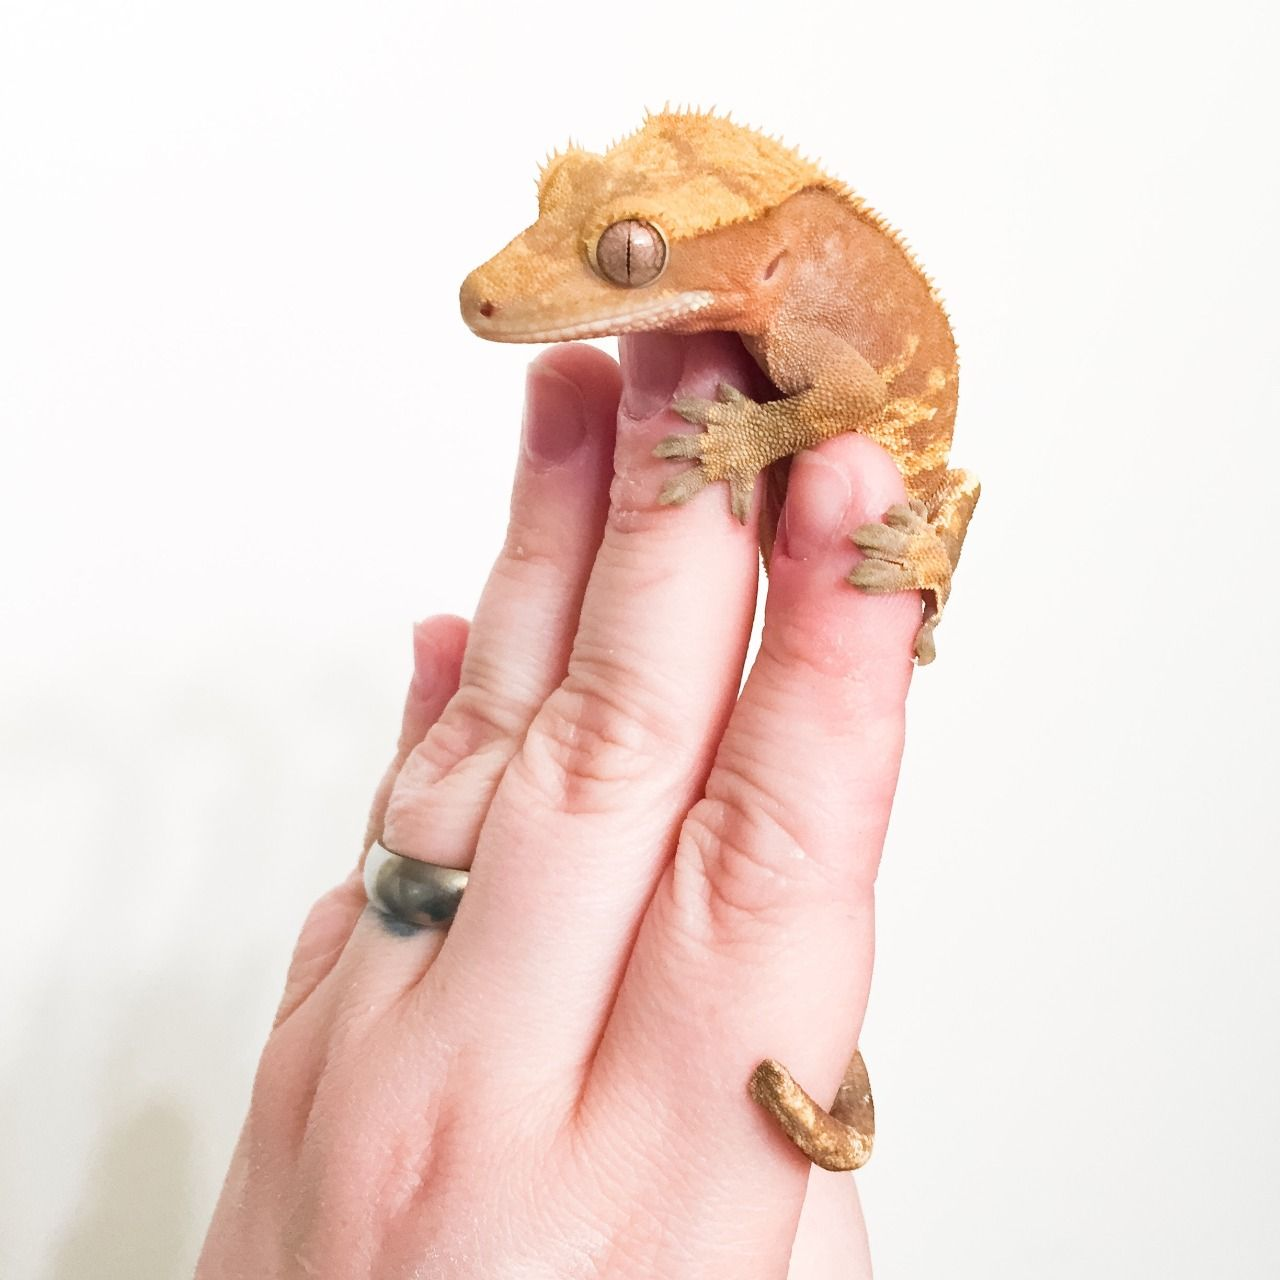 Little friendly gecko. He still doesn't have a name. - #crested #crestie #gecko #reptiblr